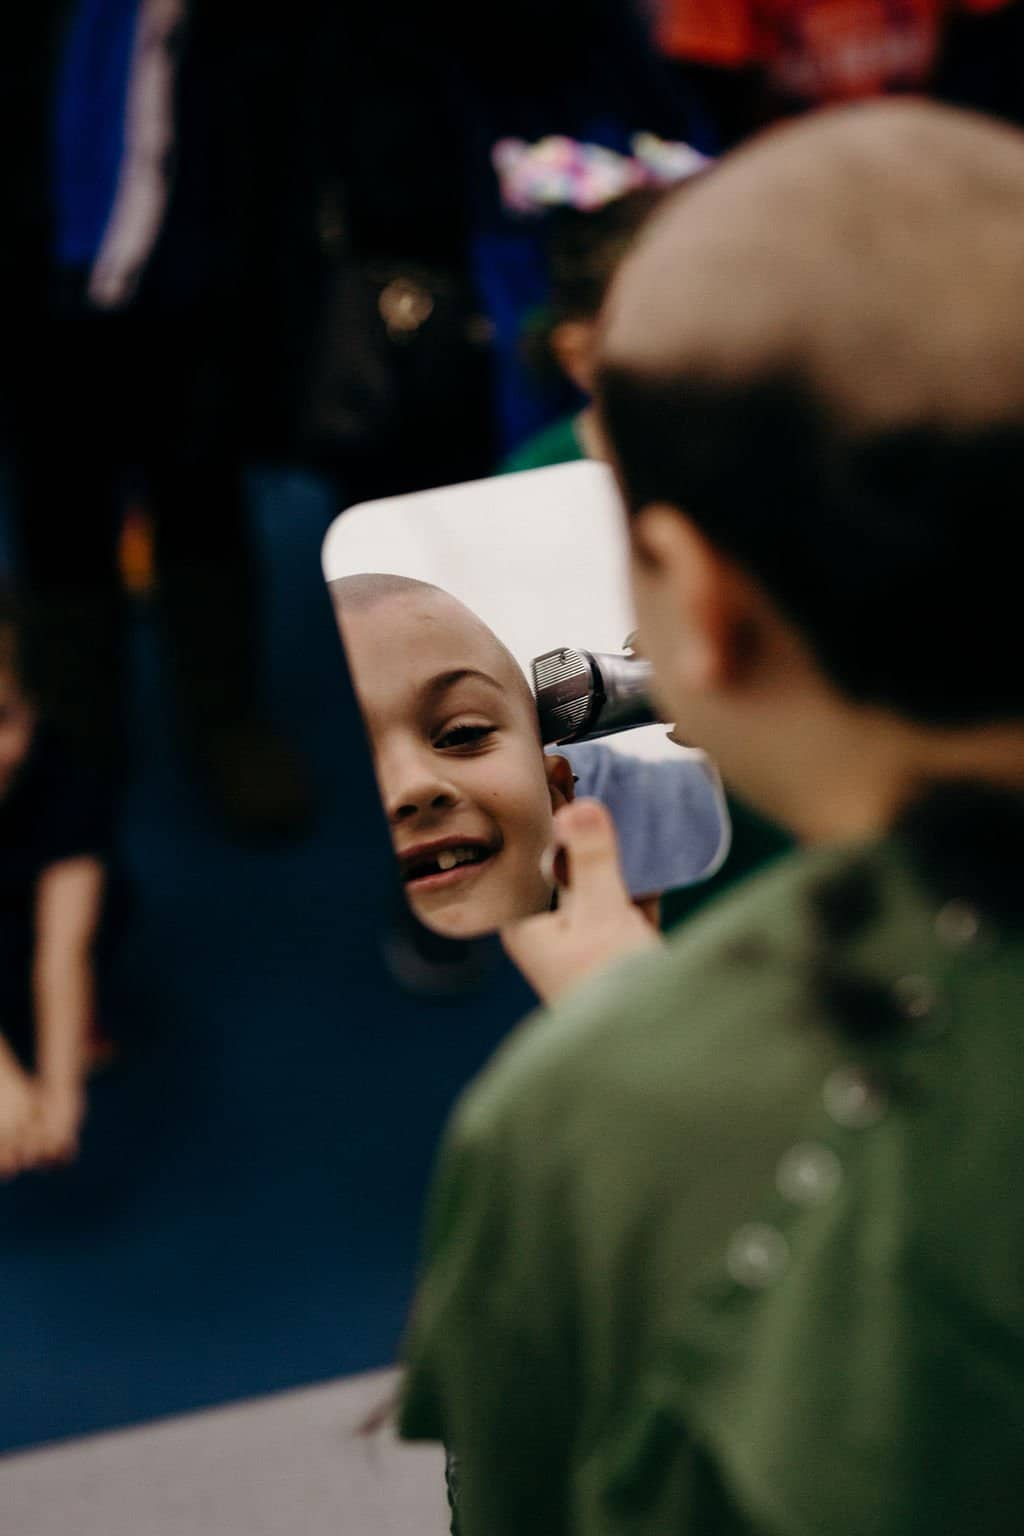 St. Baldricks | I bet you wouldn't shave your head 127